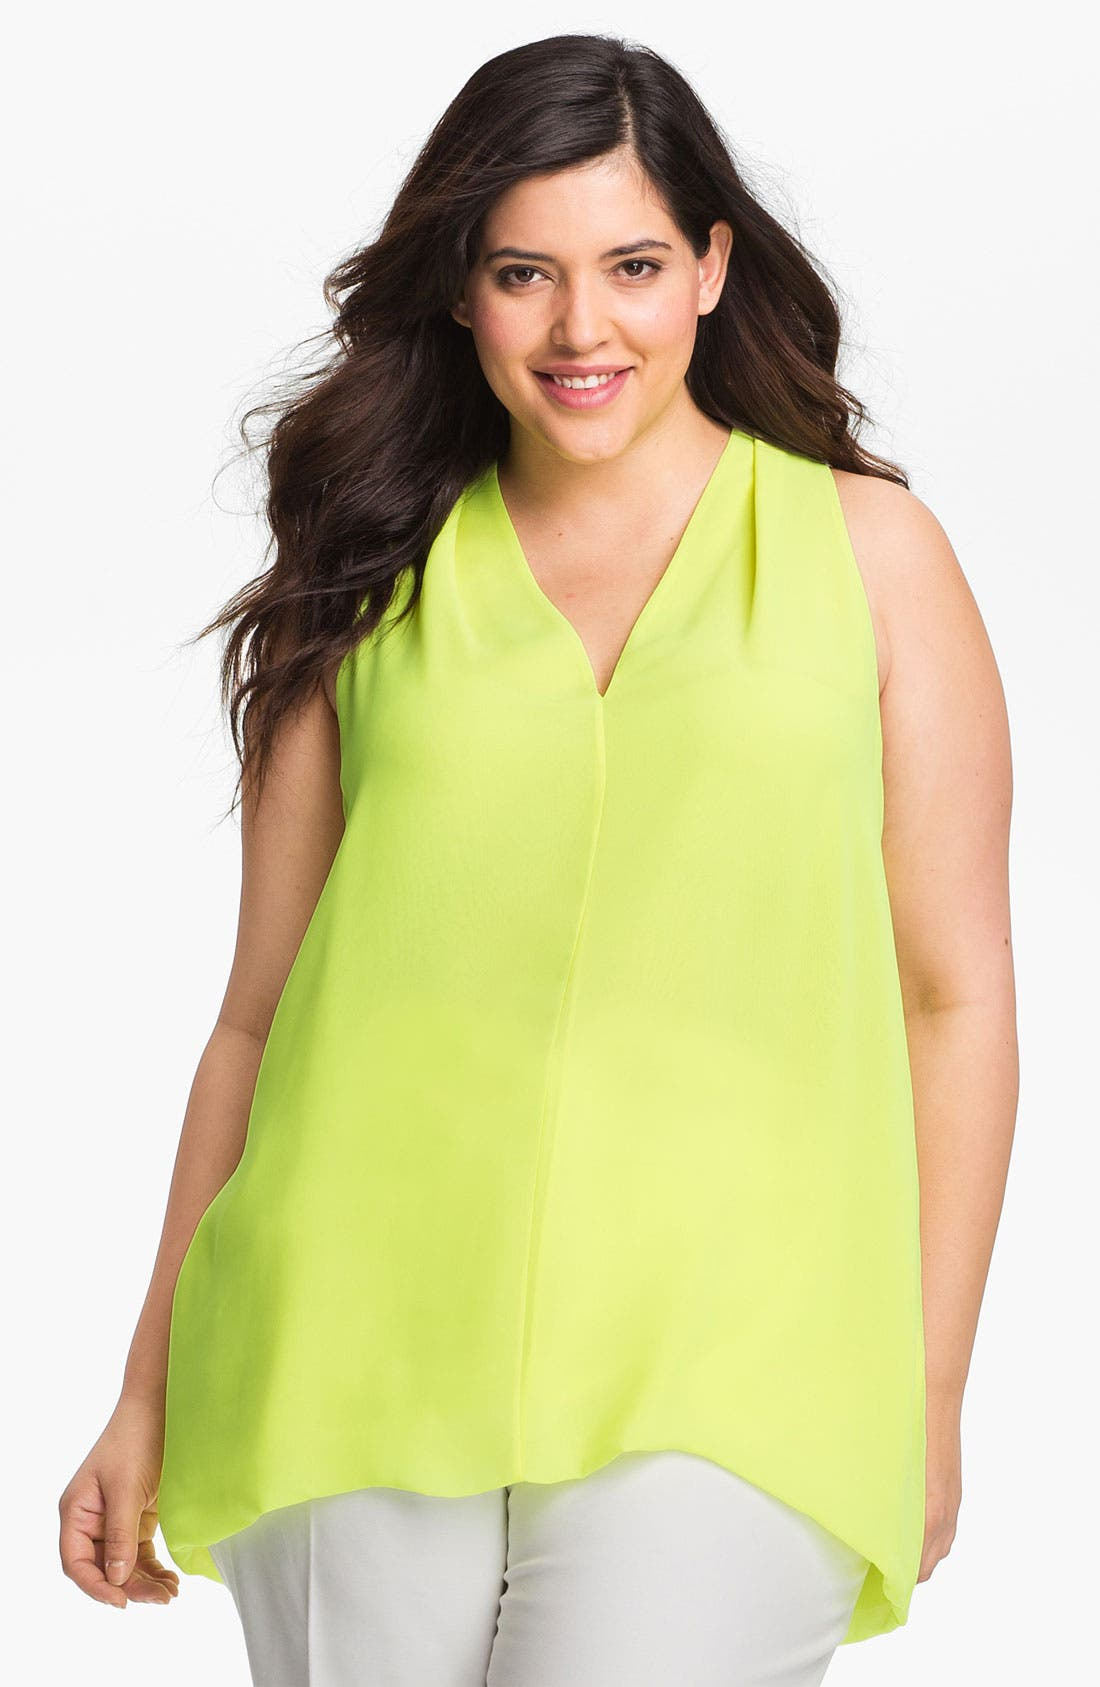 Alternate Image 1 Selected - Vince Camuto Sleeveless V-Neck Blouse (Plus Size)